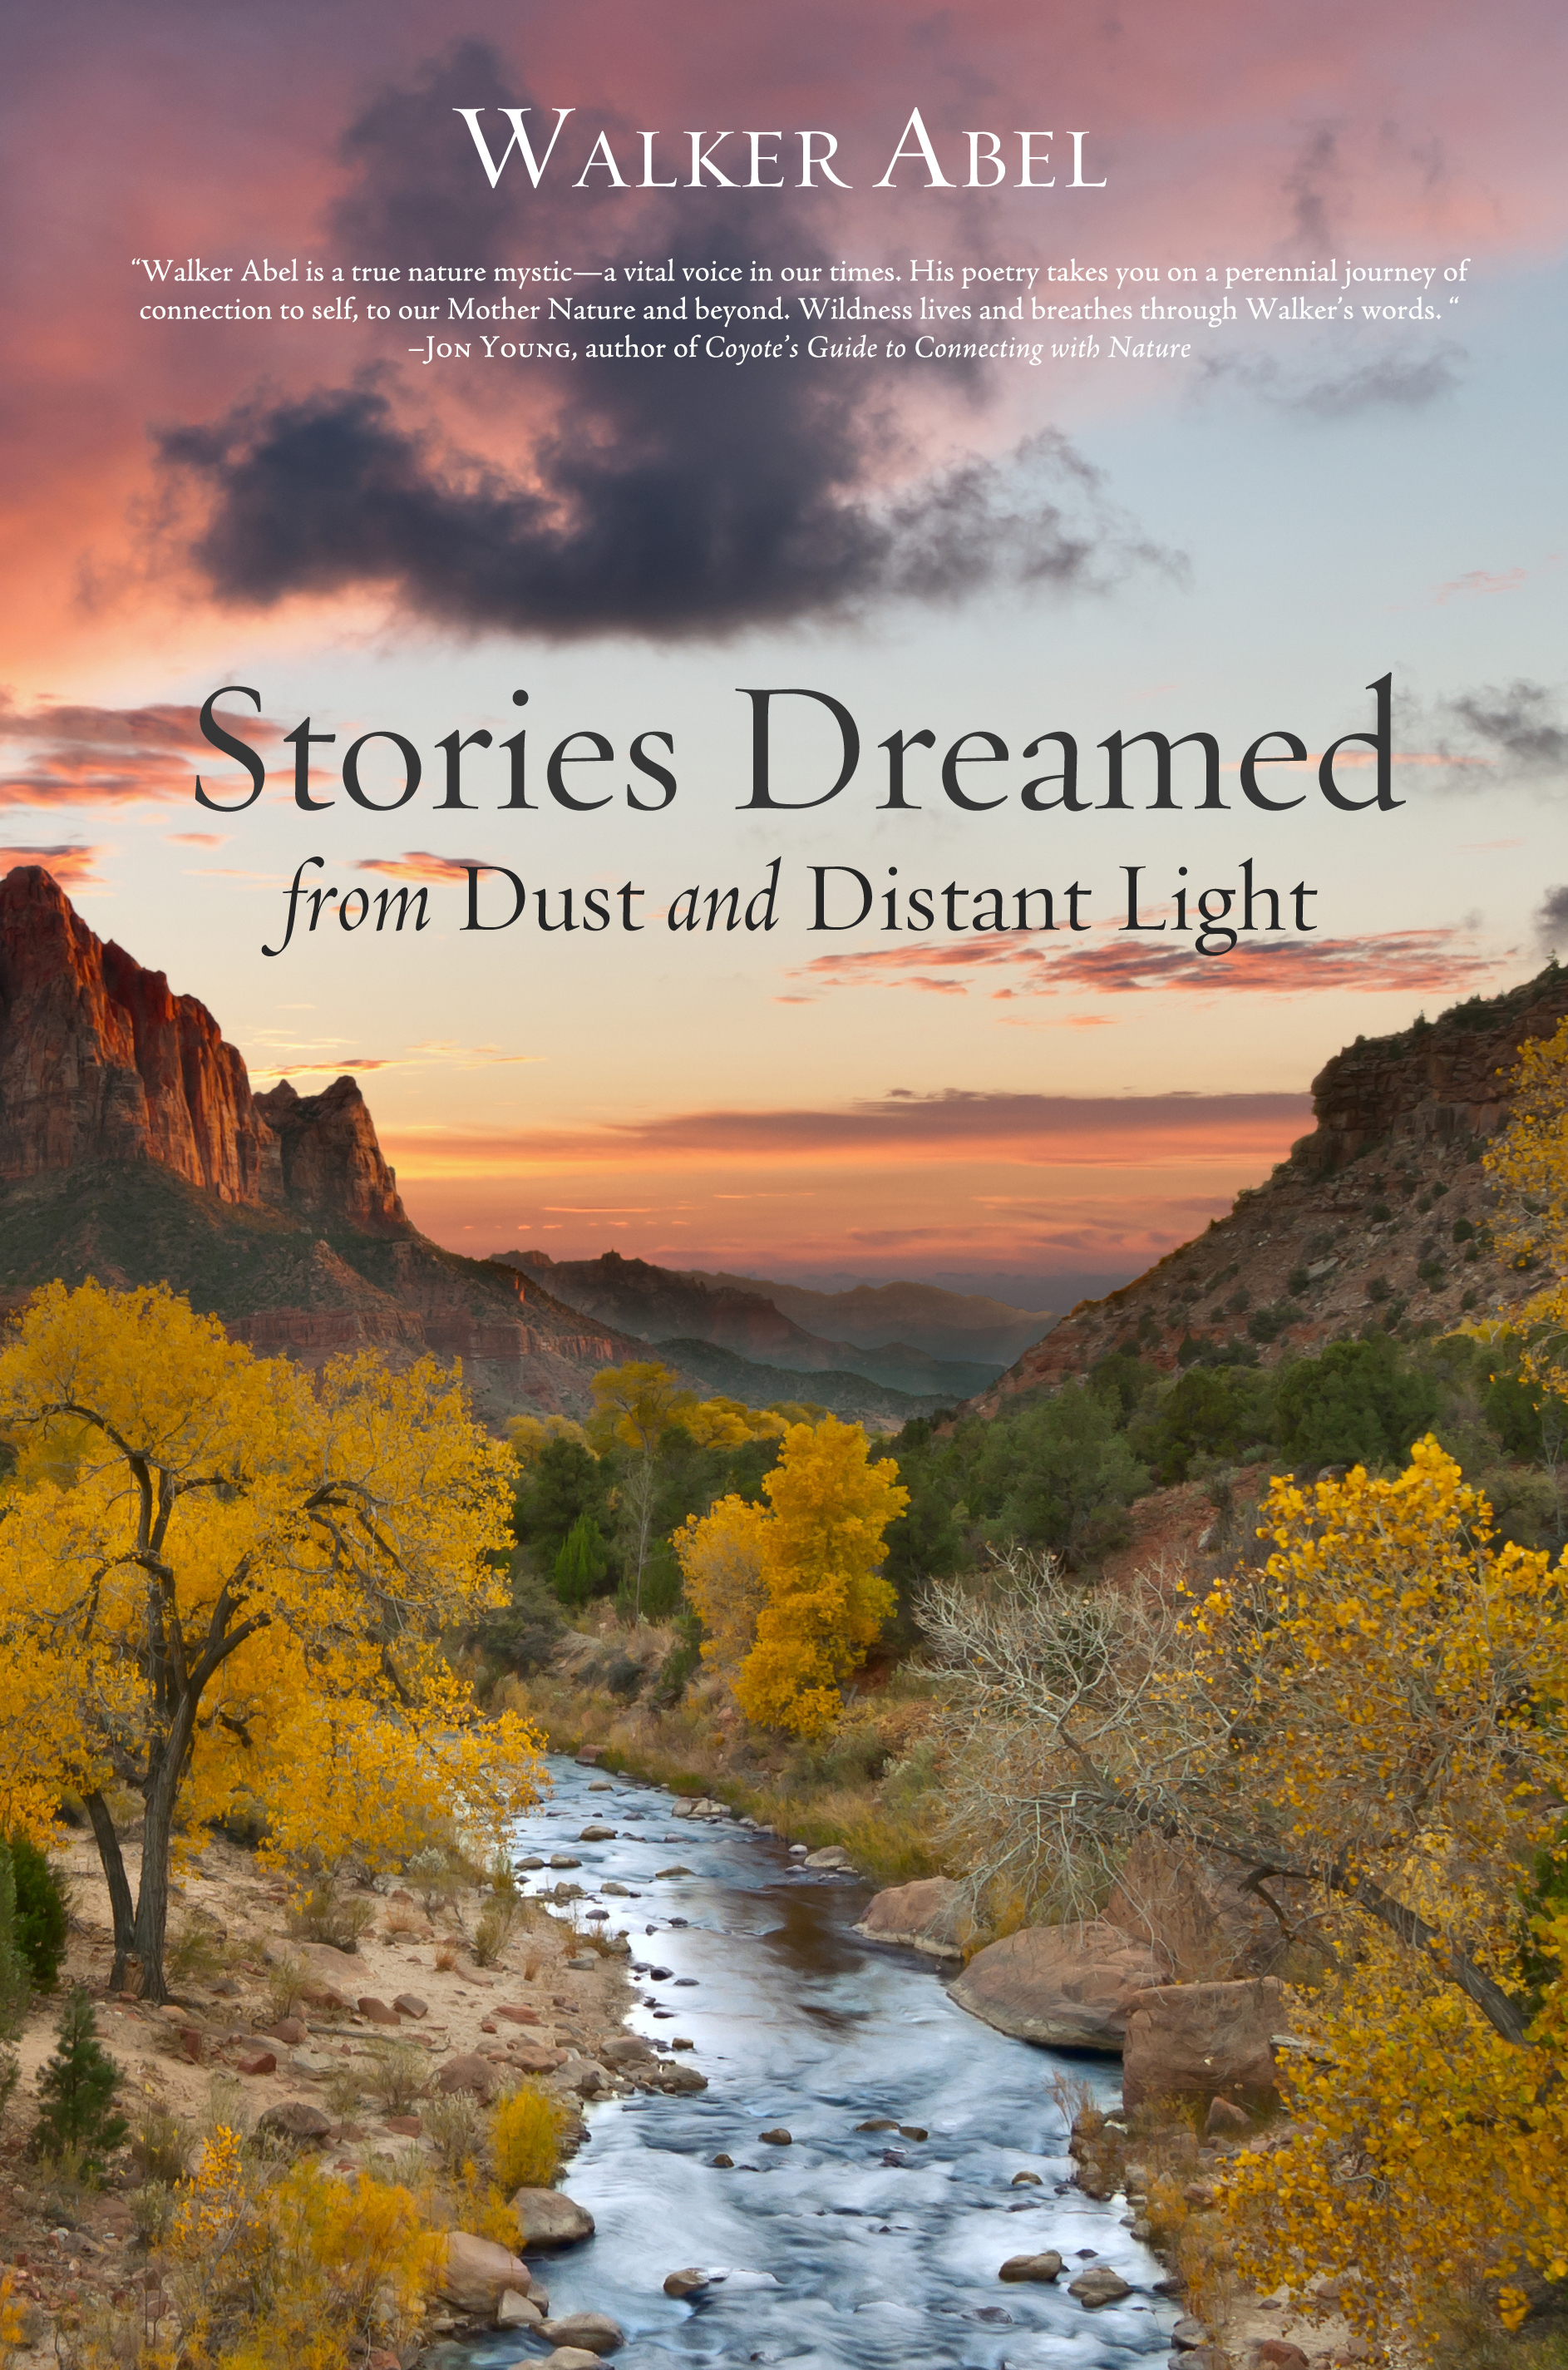 Stories Dreamed from Dust and Distant Light